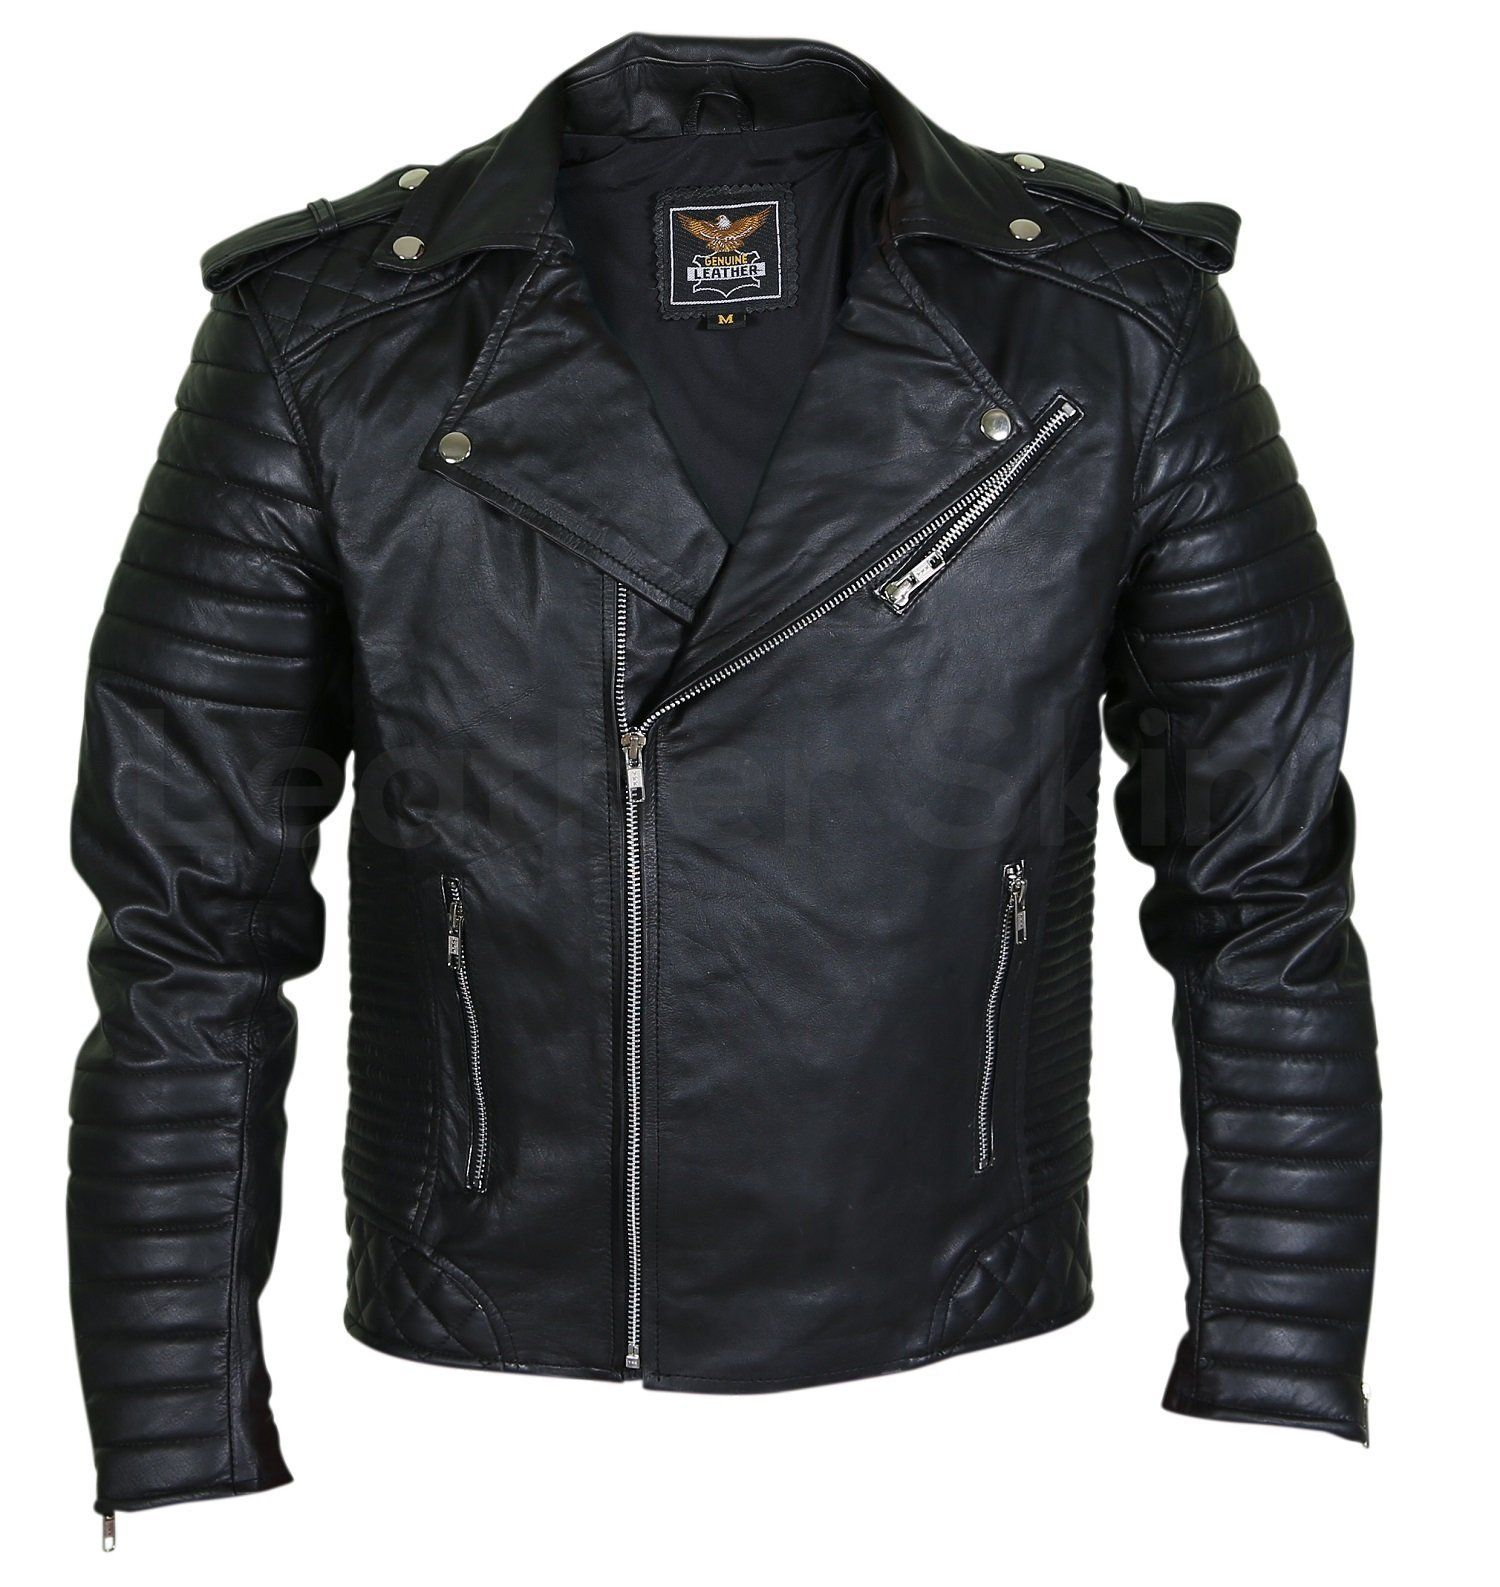 15191a9470 Men Black Brando Motorcycle Leather Jacket with shoulder epaulets and padded  sleeves